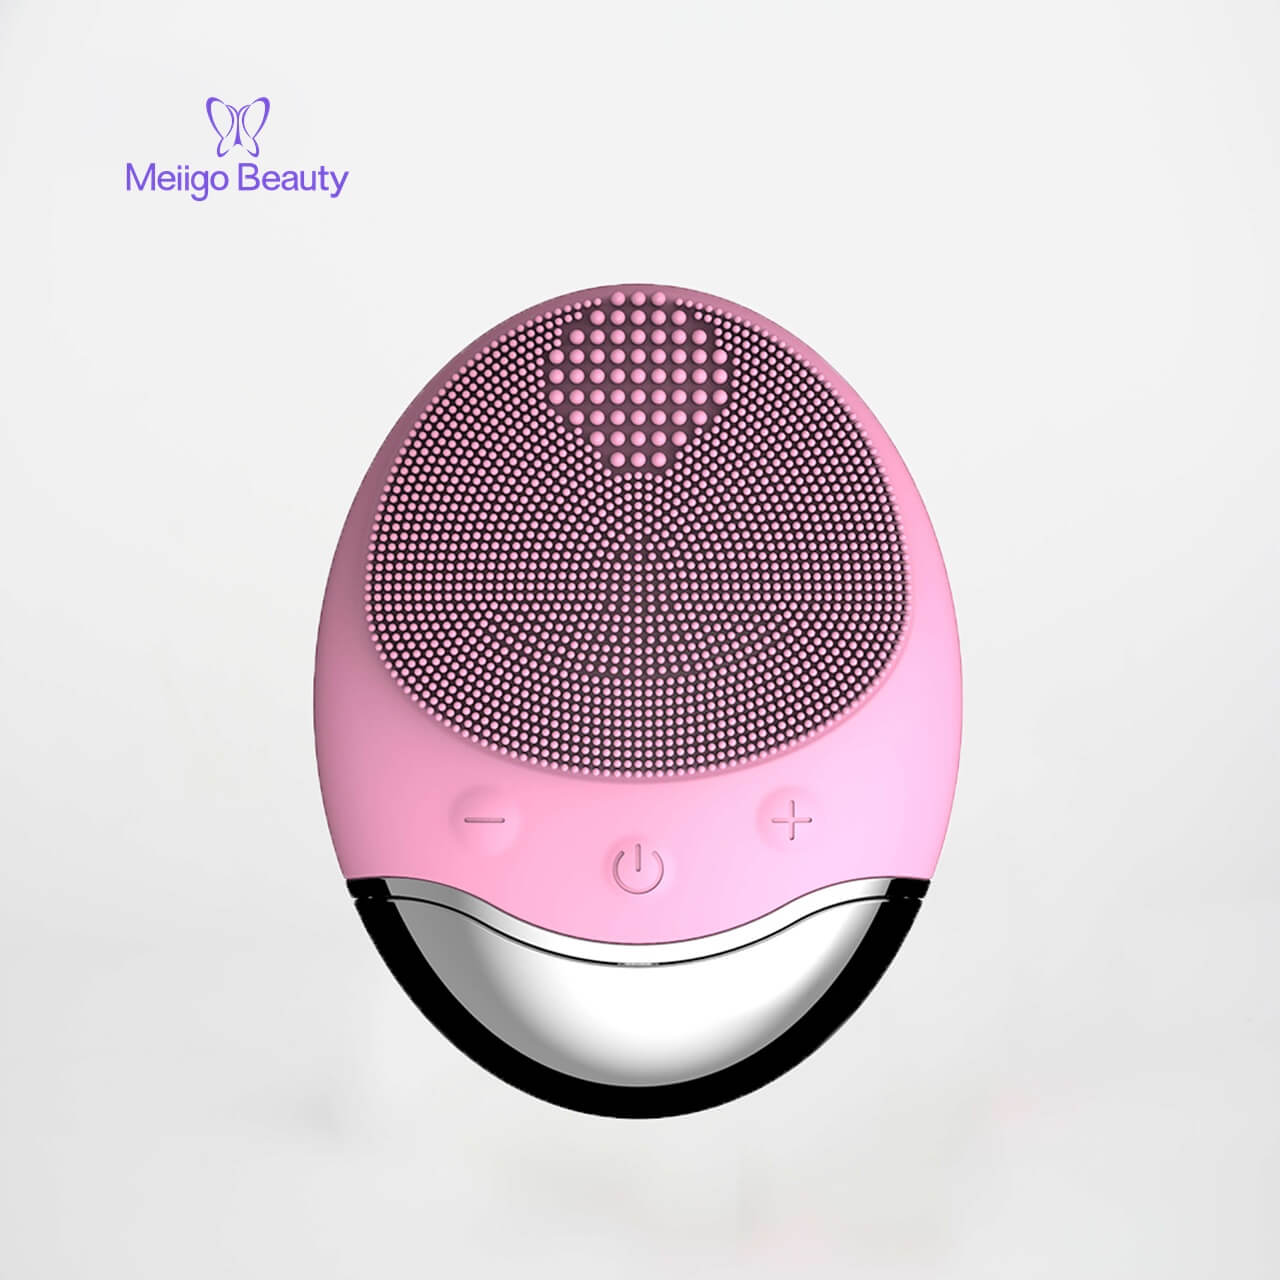 Meiigo beauty silicone face brush BR 003 2 - Sonic facial cleansing brush silicone vibrating cleanser & massager  BR-003